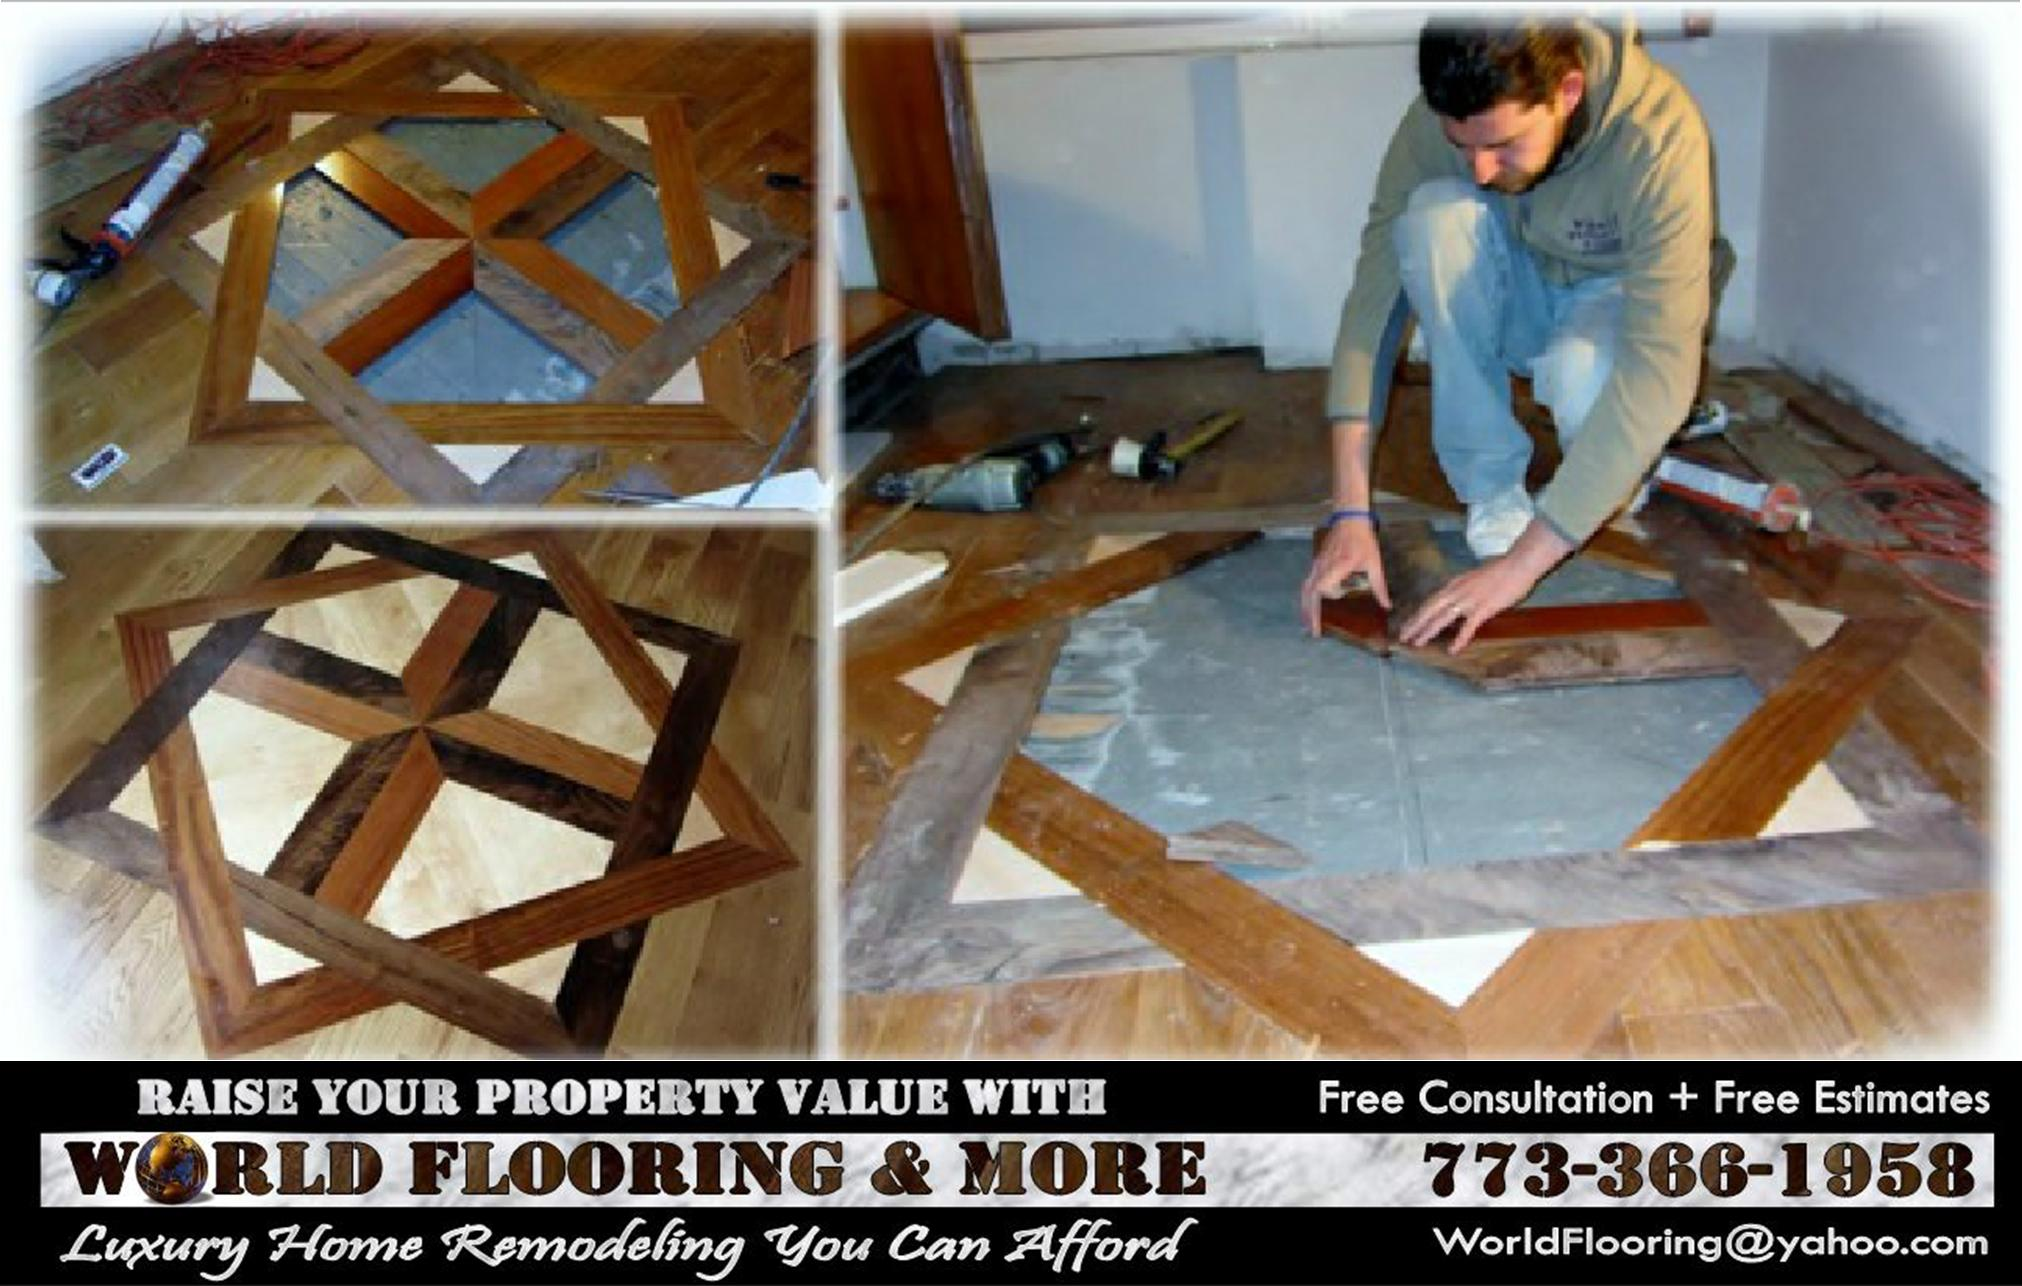 How To Make And Install A Hardwood Flooring Medallion Inlay Free Estimates Chicago Soburbs